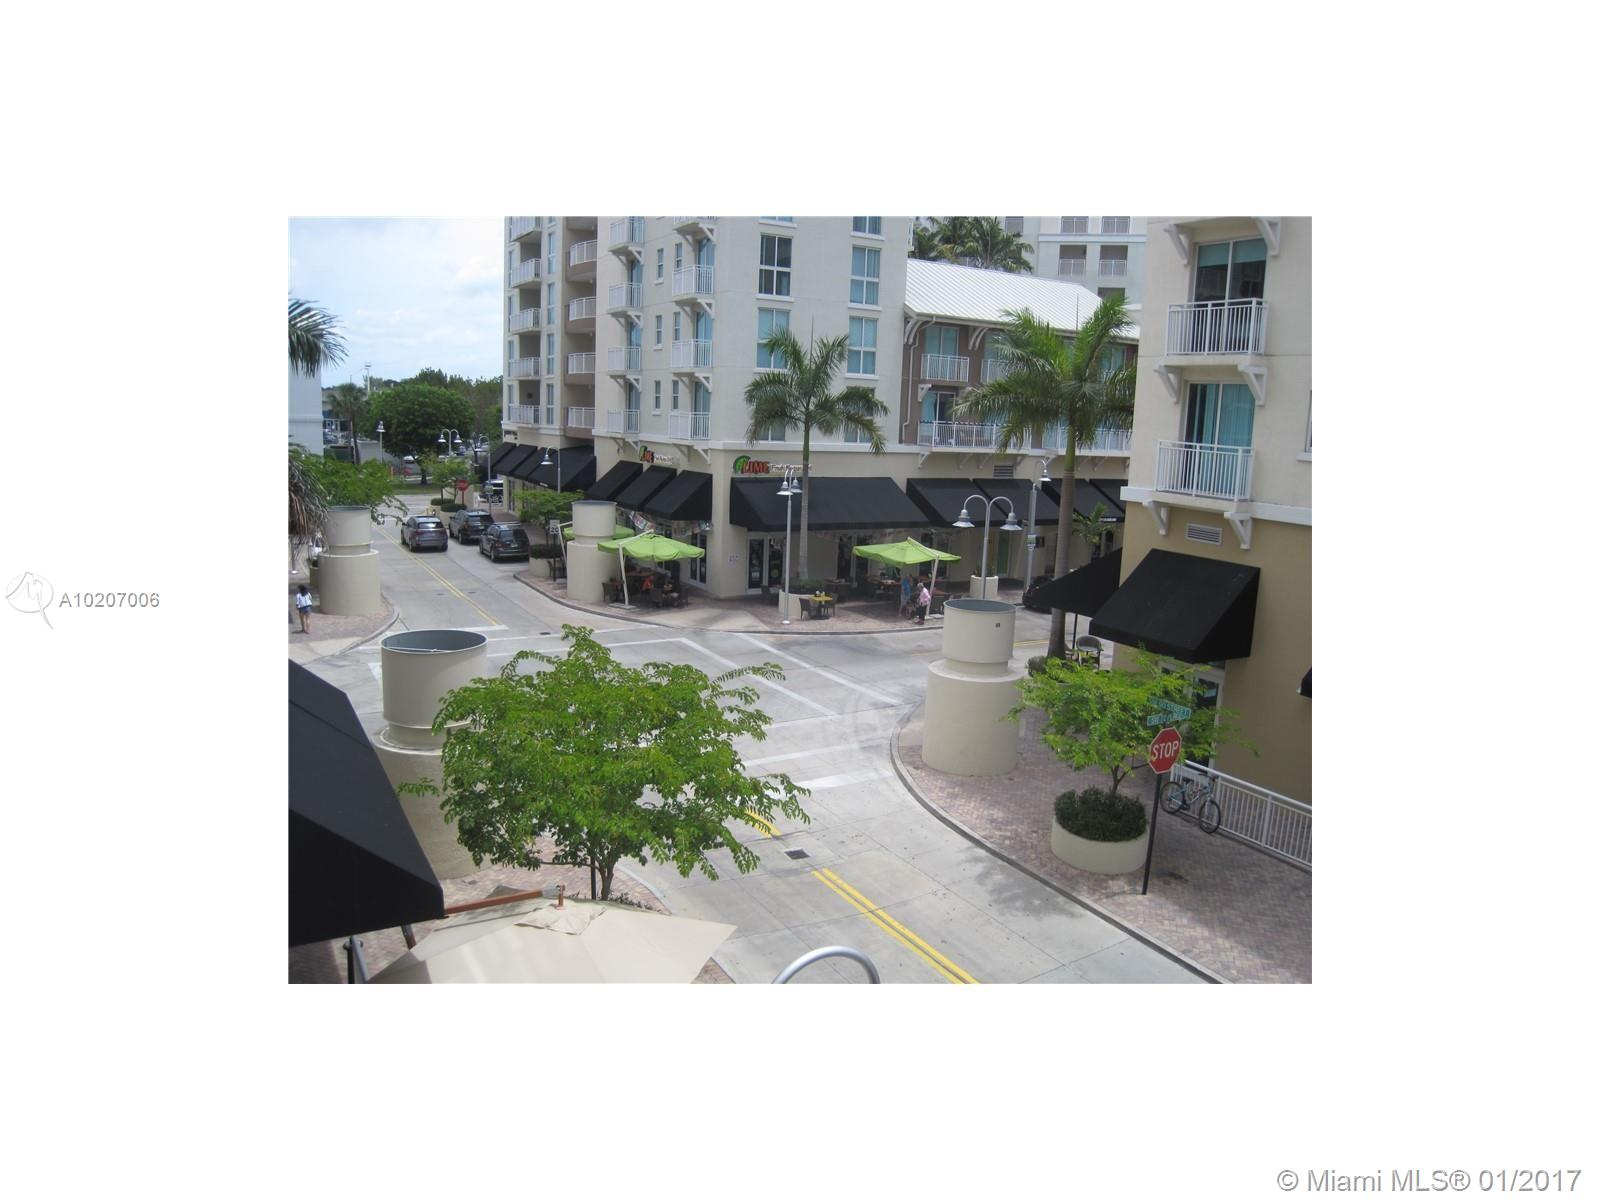 Downtown Dadeland #D209 - 09 - photo